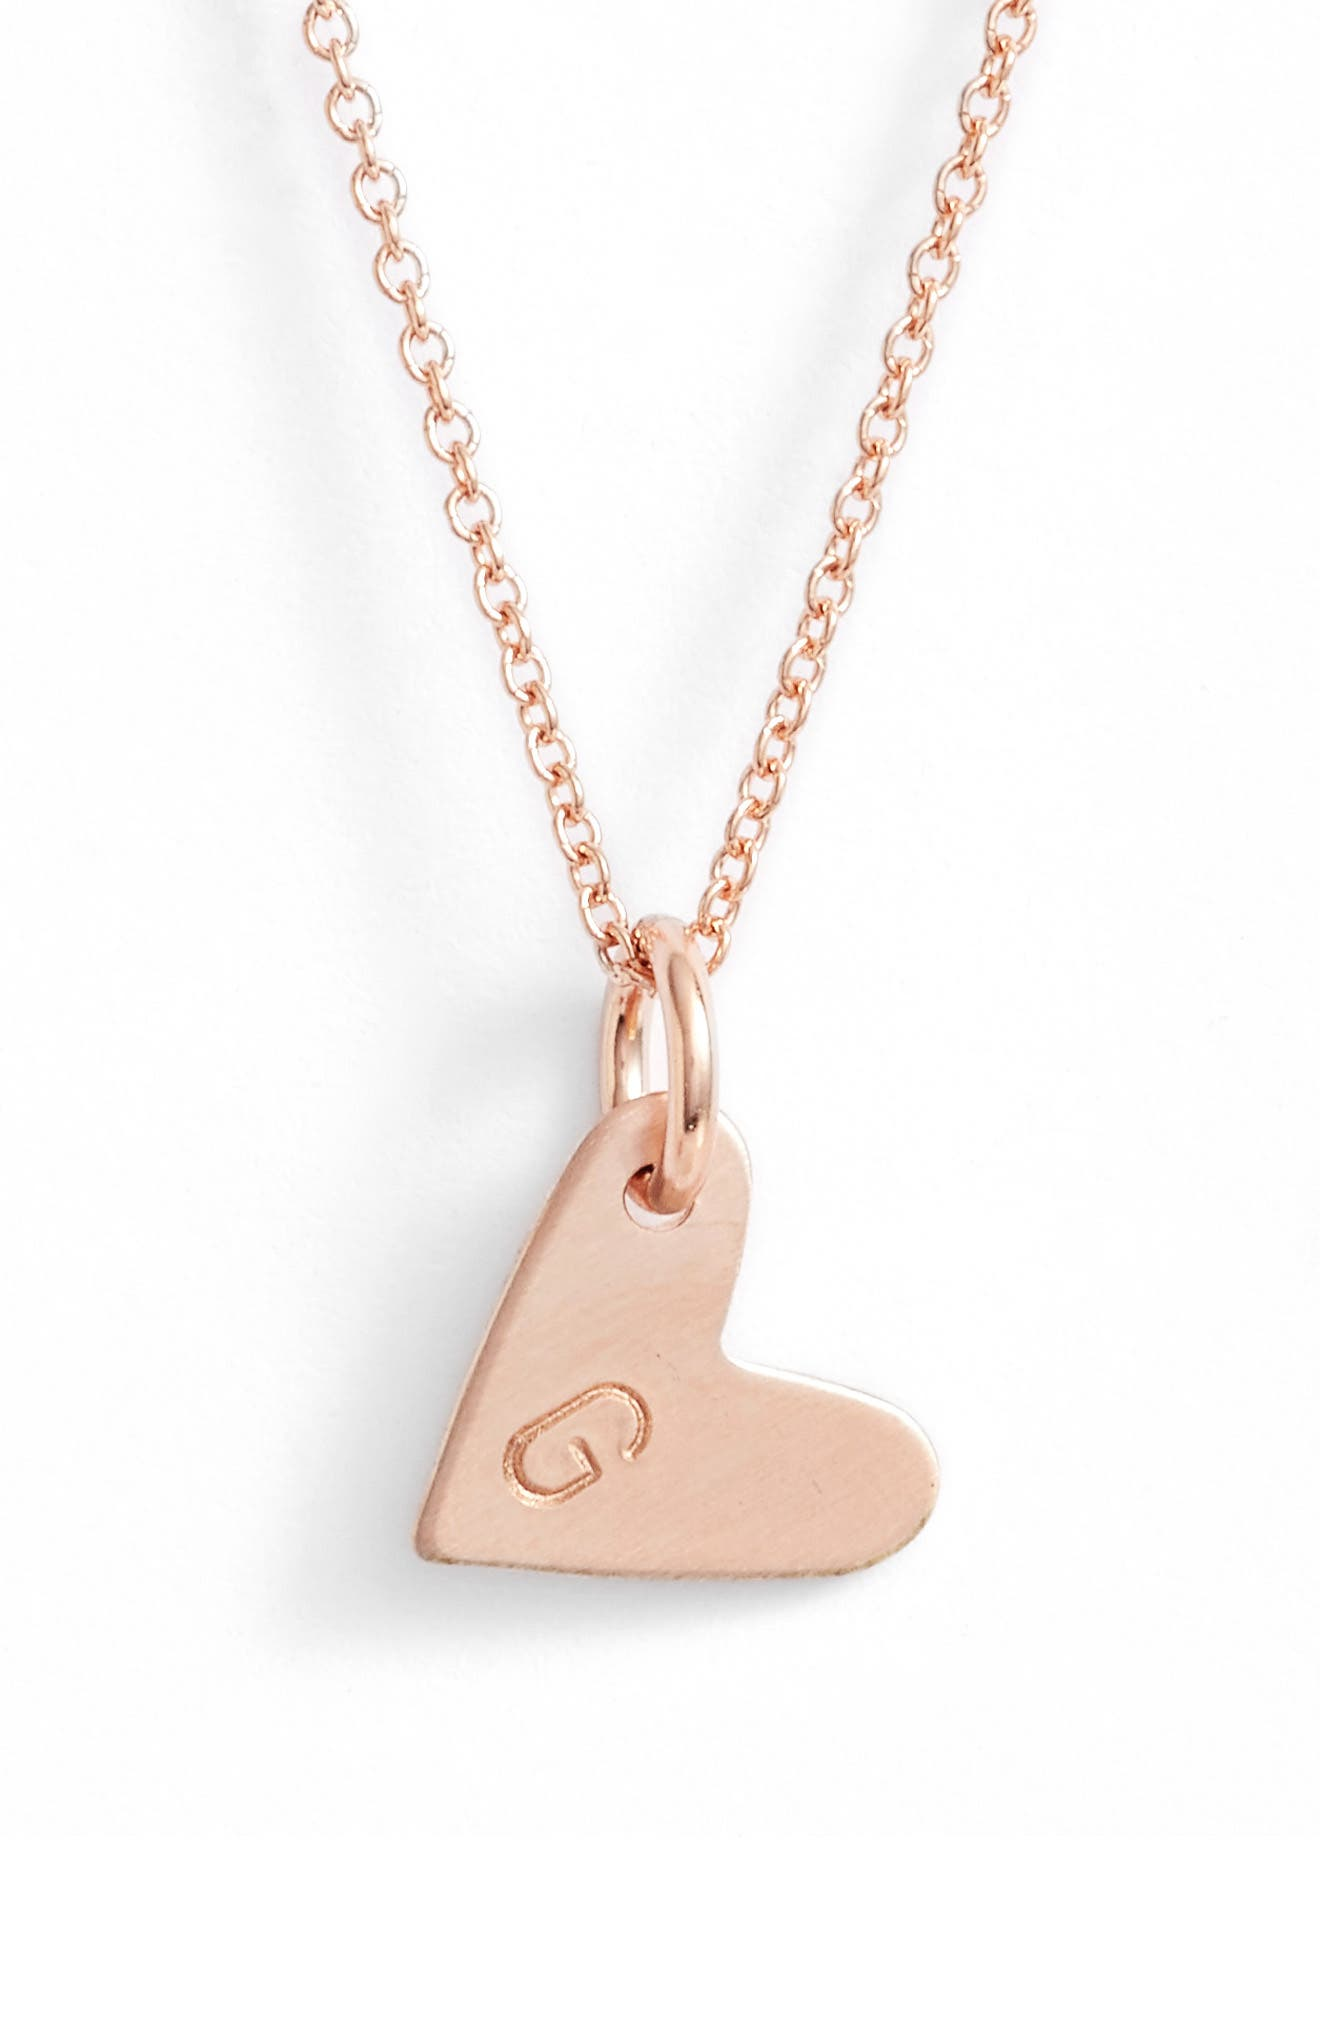 Initial Heart Pendant Necklace,                             Main thumbnail 1, color,                             Rose Gold/ G